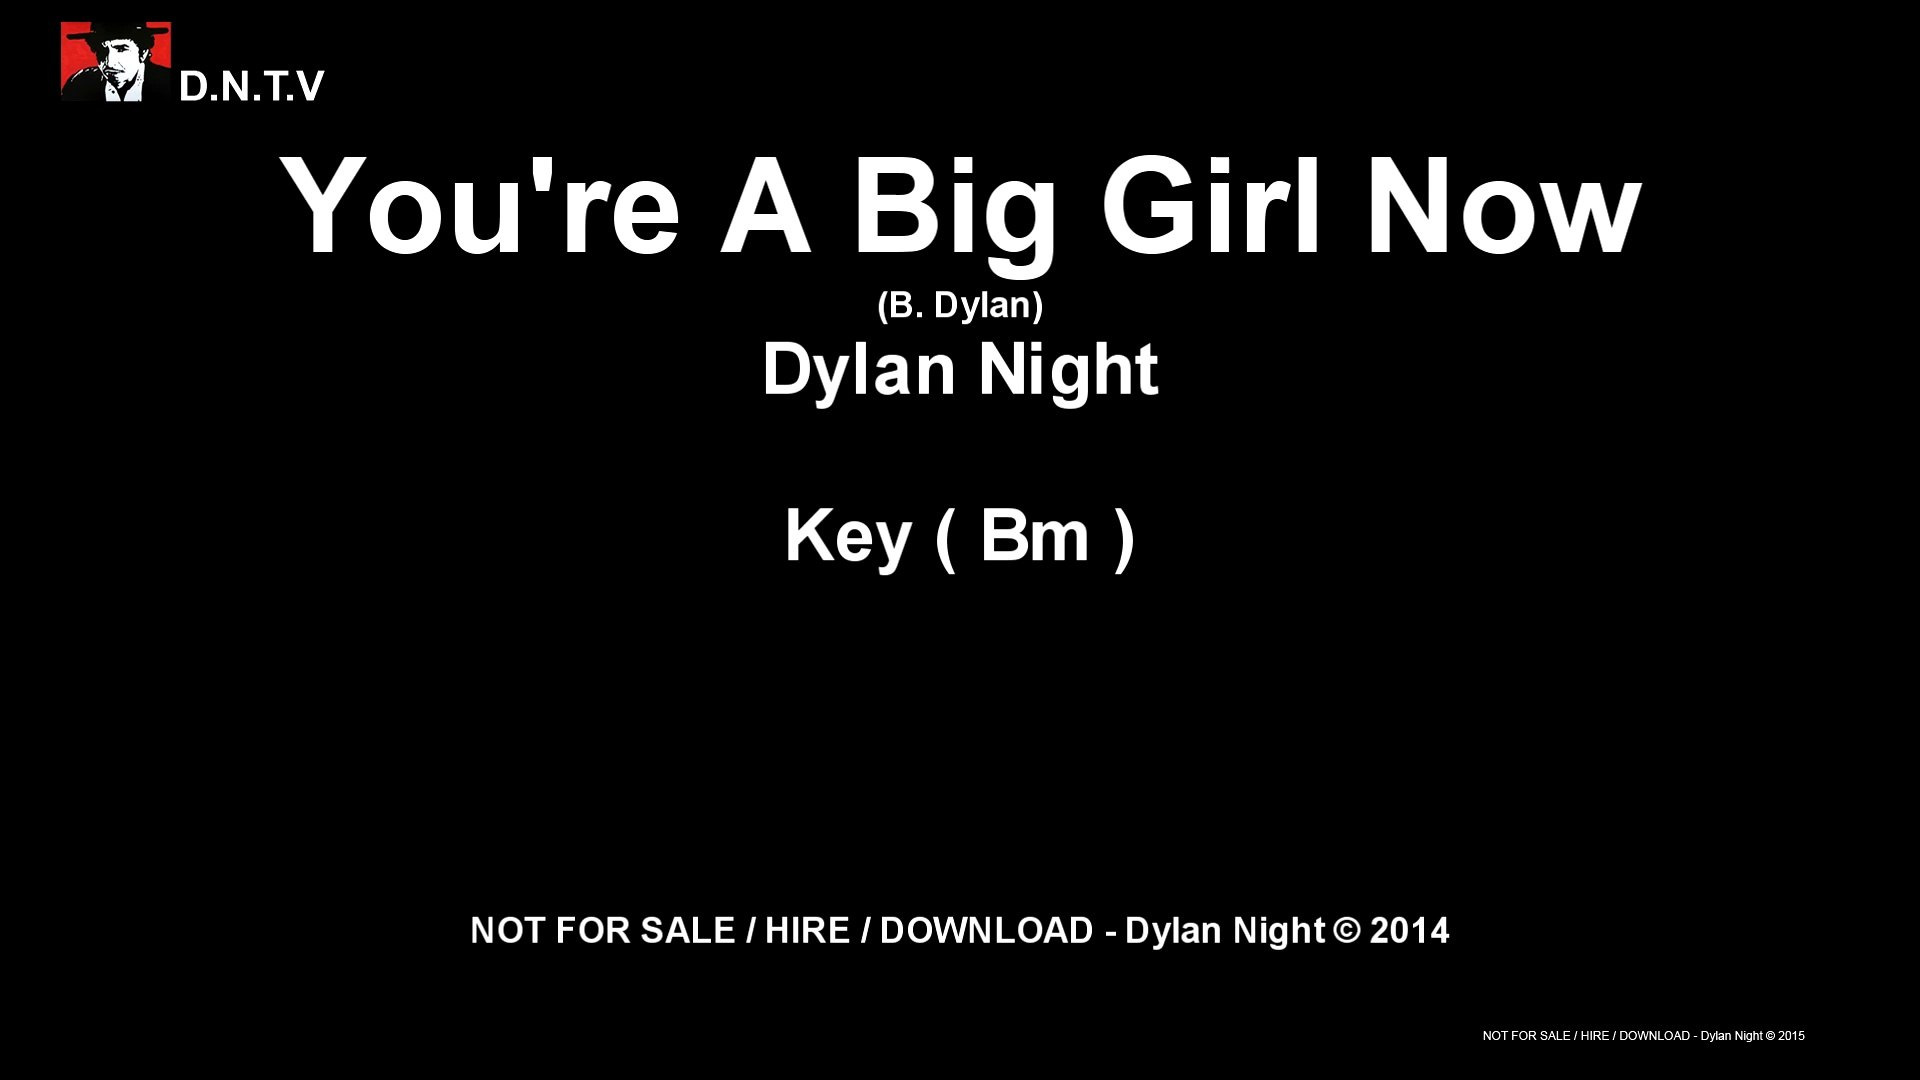 Dylan Night - You're A Big Girl Now (Bm)